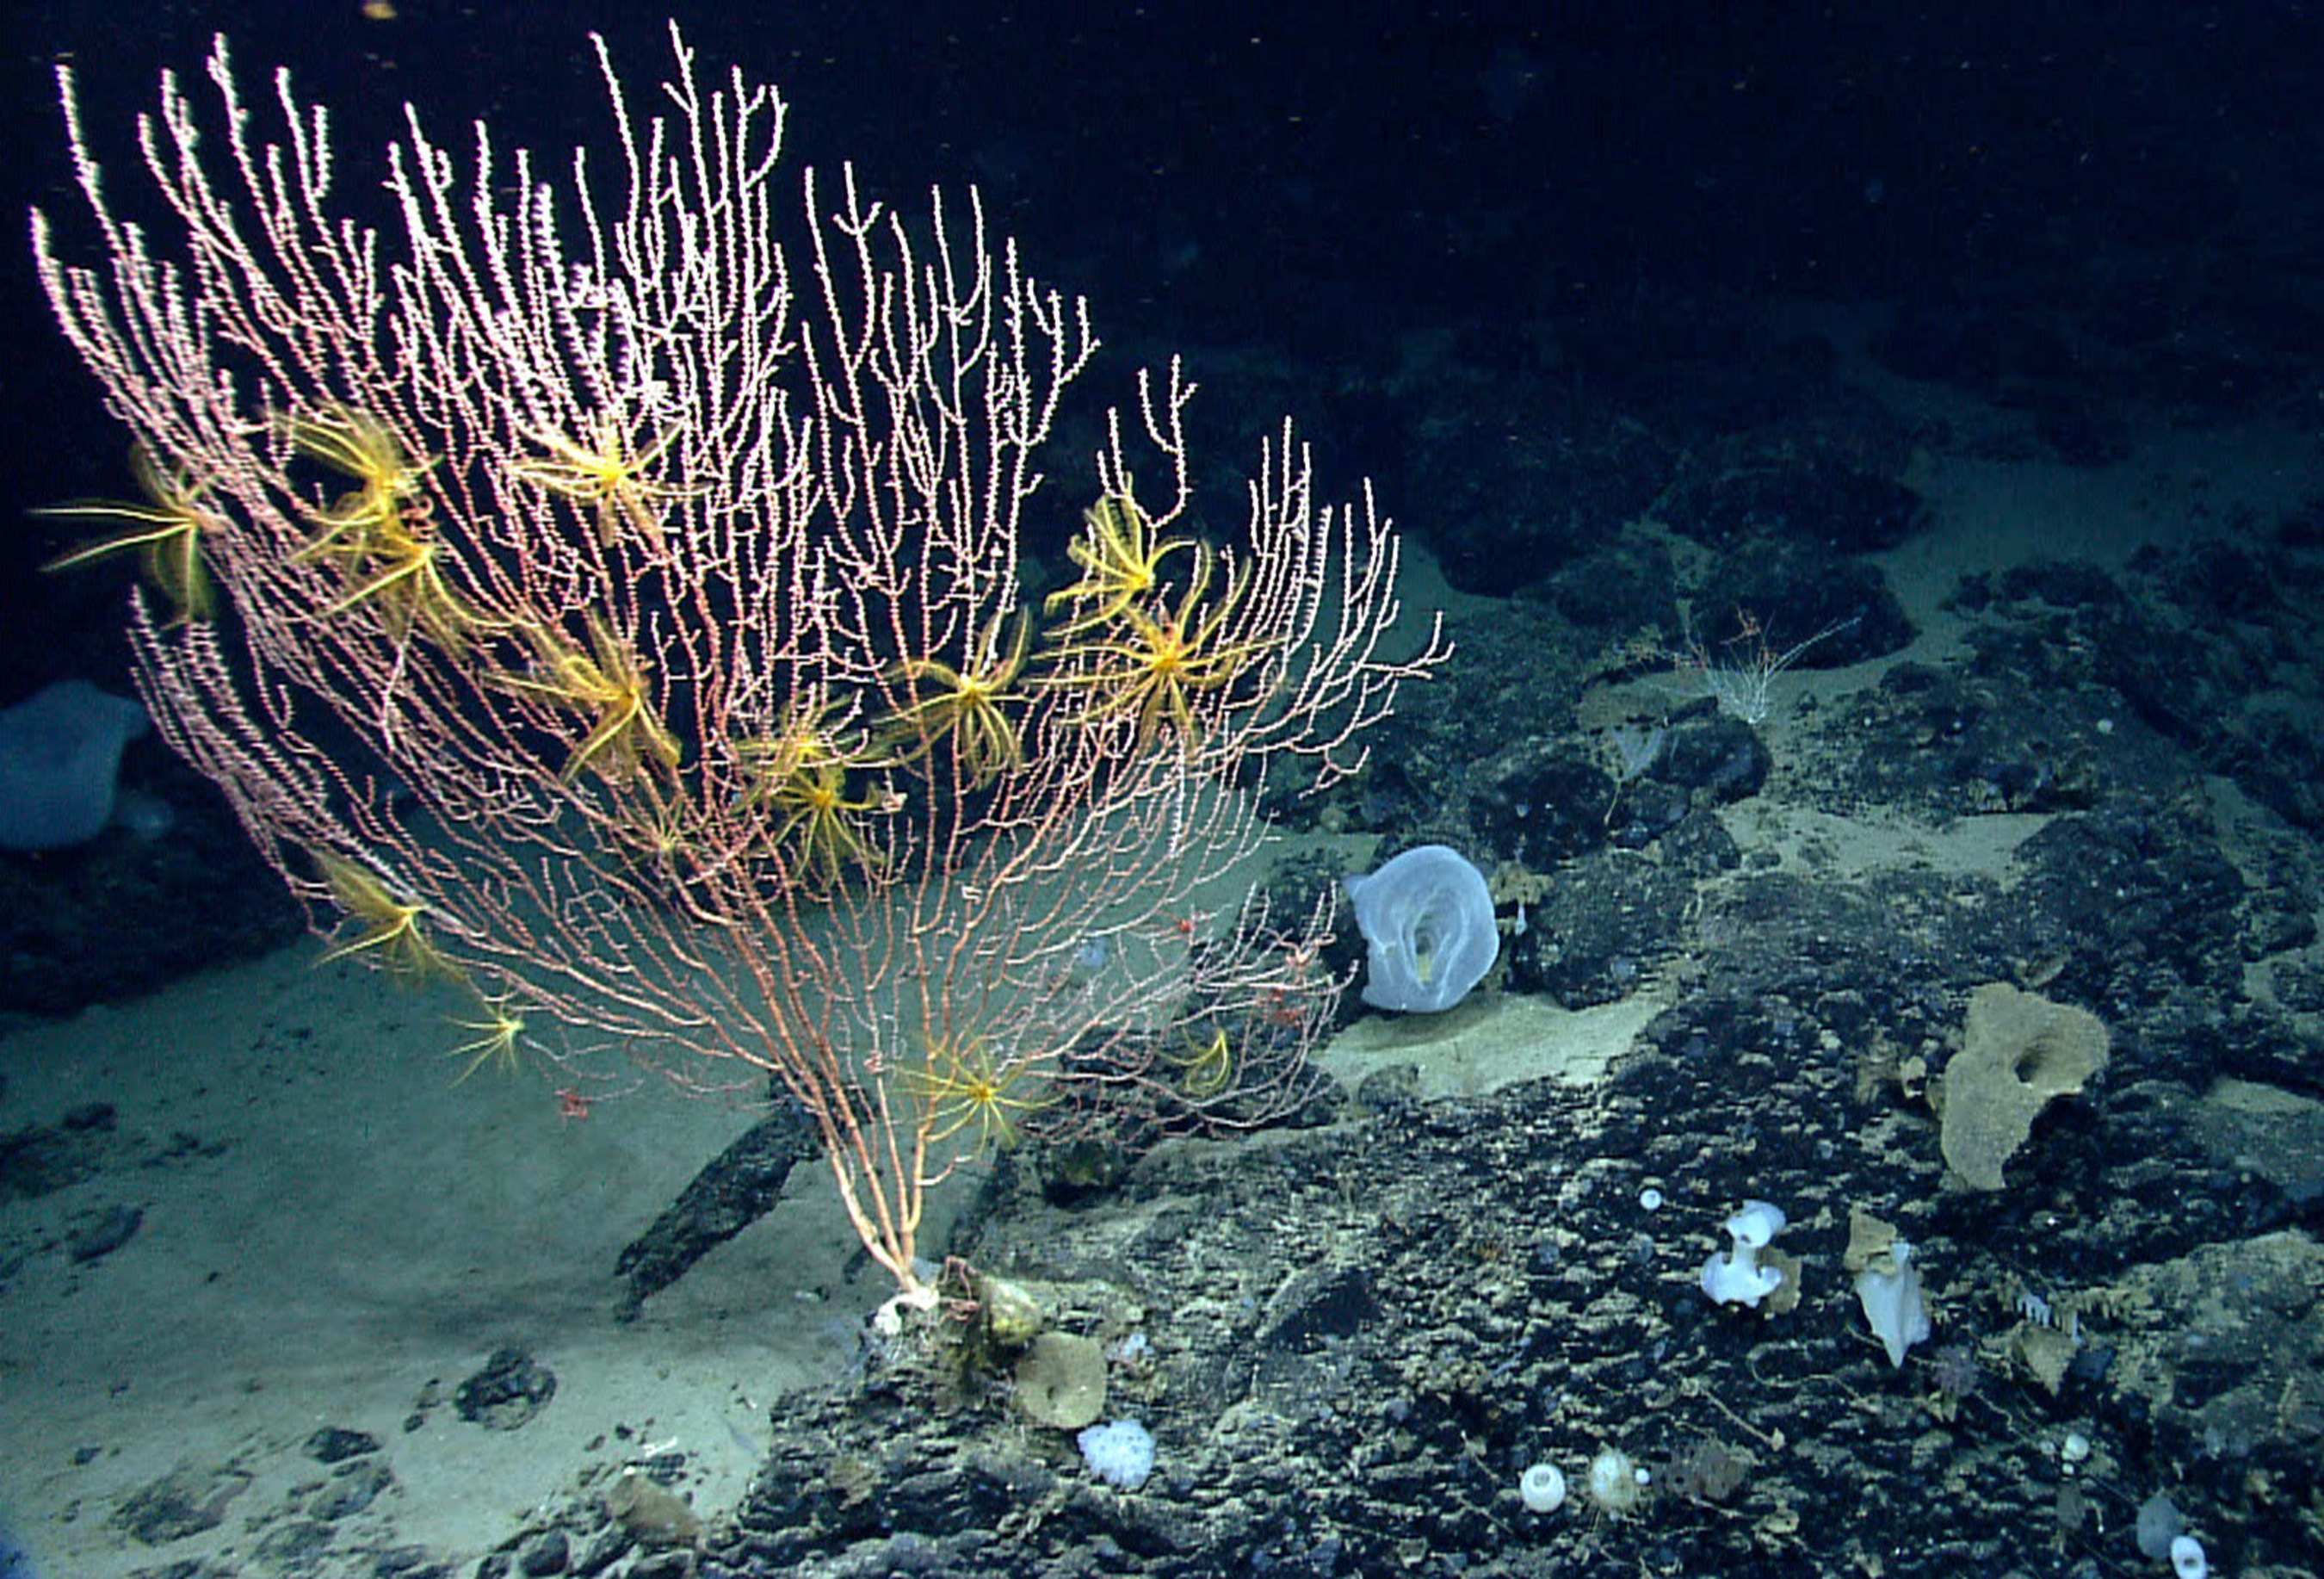 On Mytilus Seamount, a bamboo coral is attached to the black basalt rock formed by a now-extinct undersea volcano. The yellow animals on the coral are crinoids, or sea lilies, in the same major group of animals as sea stars. The summit of Mytilus Seamount is 8,800 ft below the surface of the ocean. Photo: NOAA Okeanos Explorer Program, 2013 Northeast U.S. Canyons Expedition Science Team